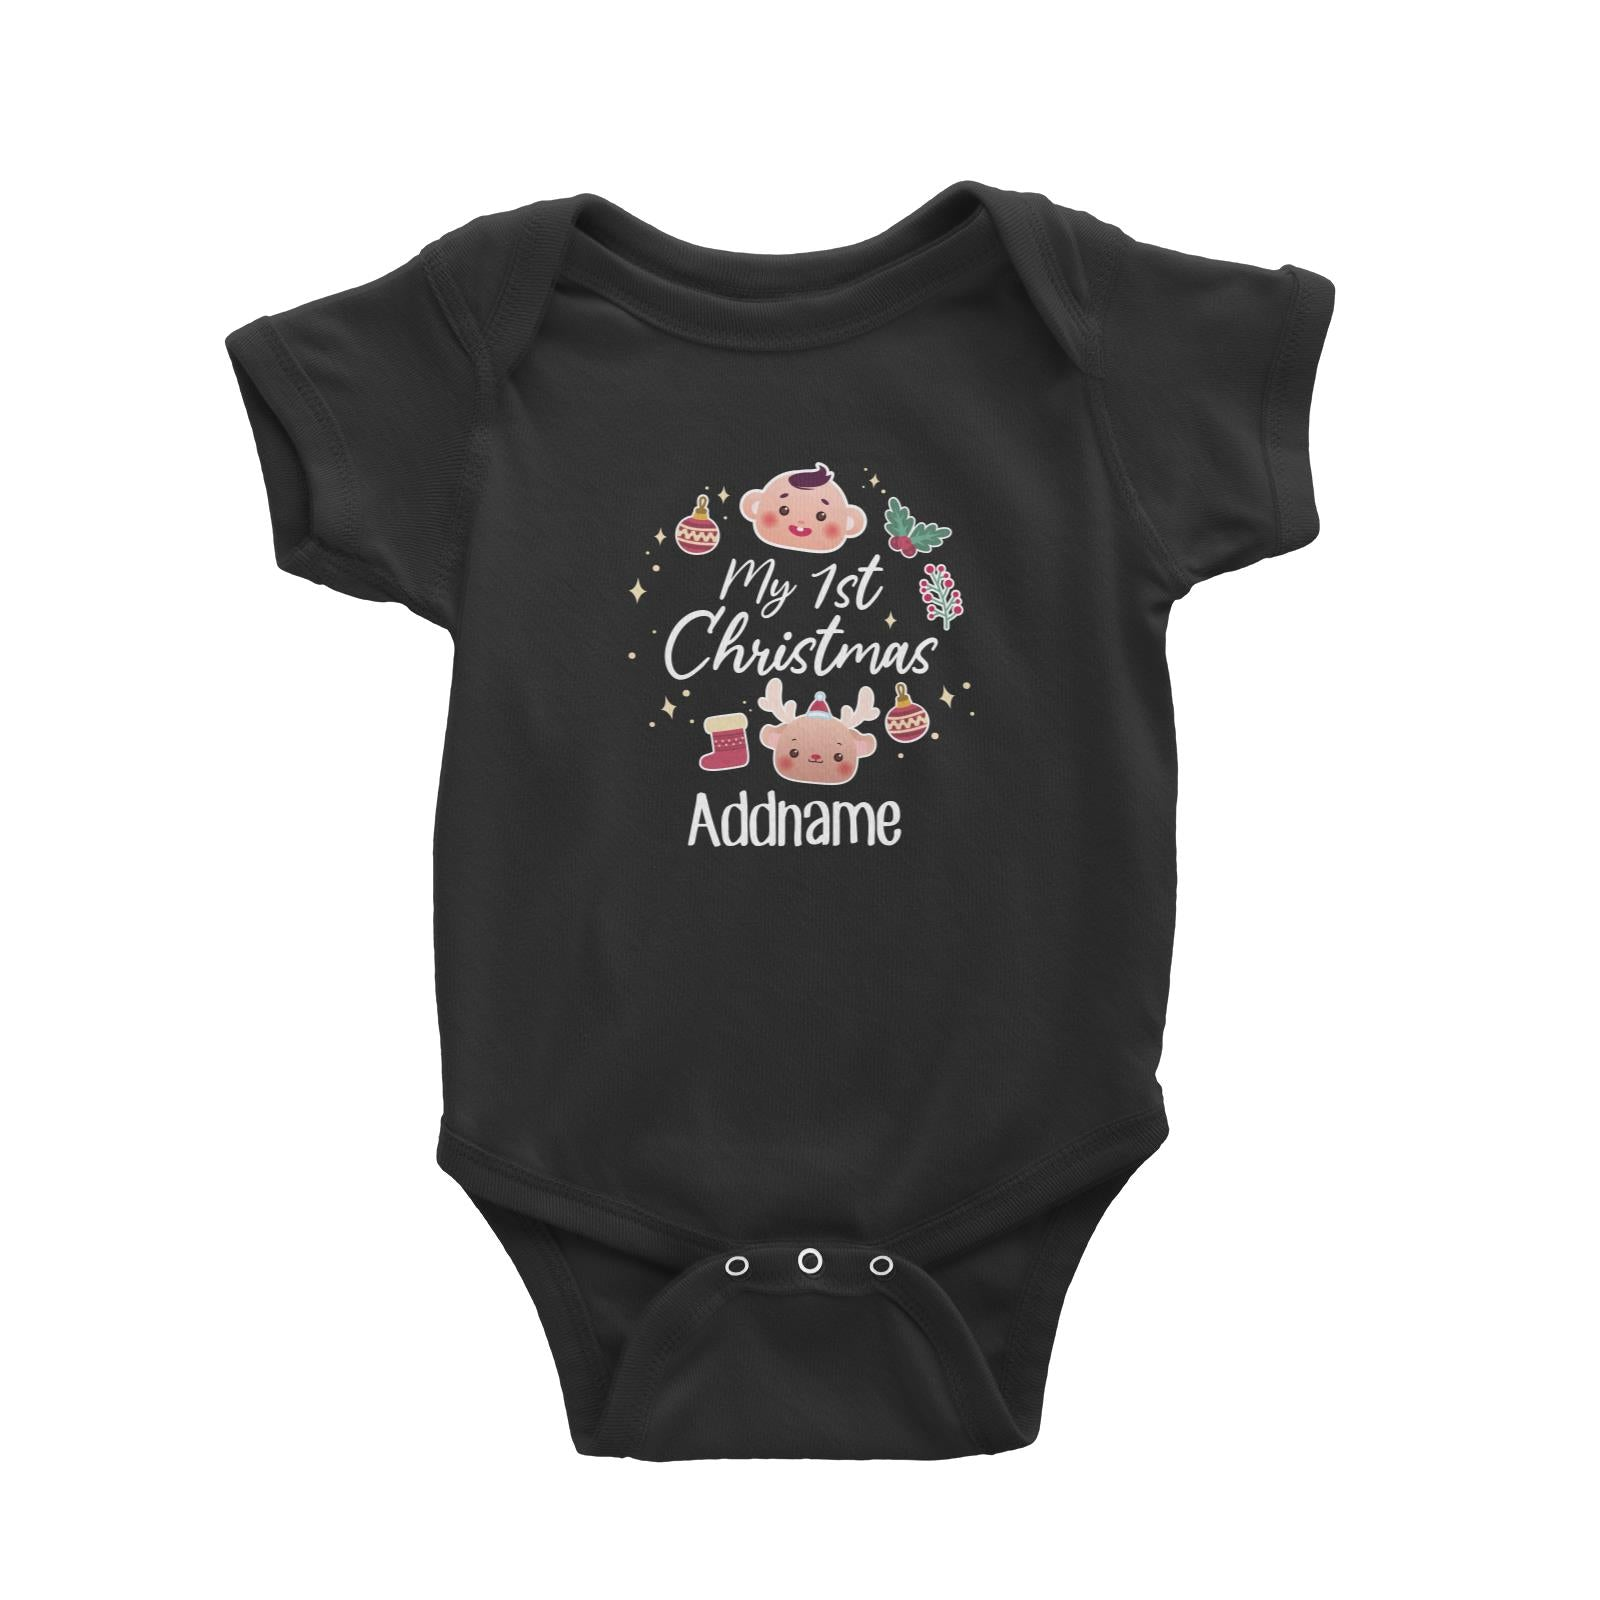 Christmas Cute Wreath My 1st Christmas Baby Romper